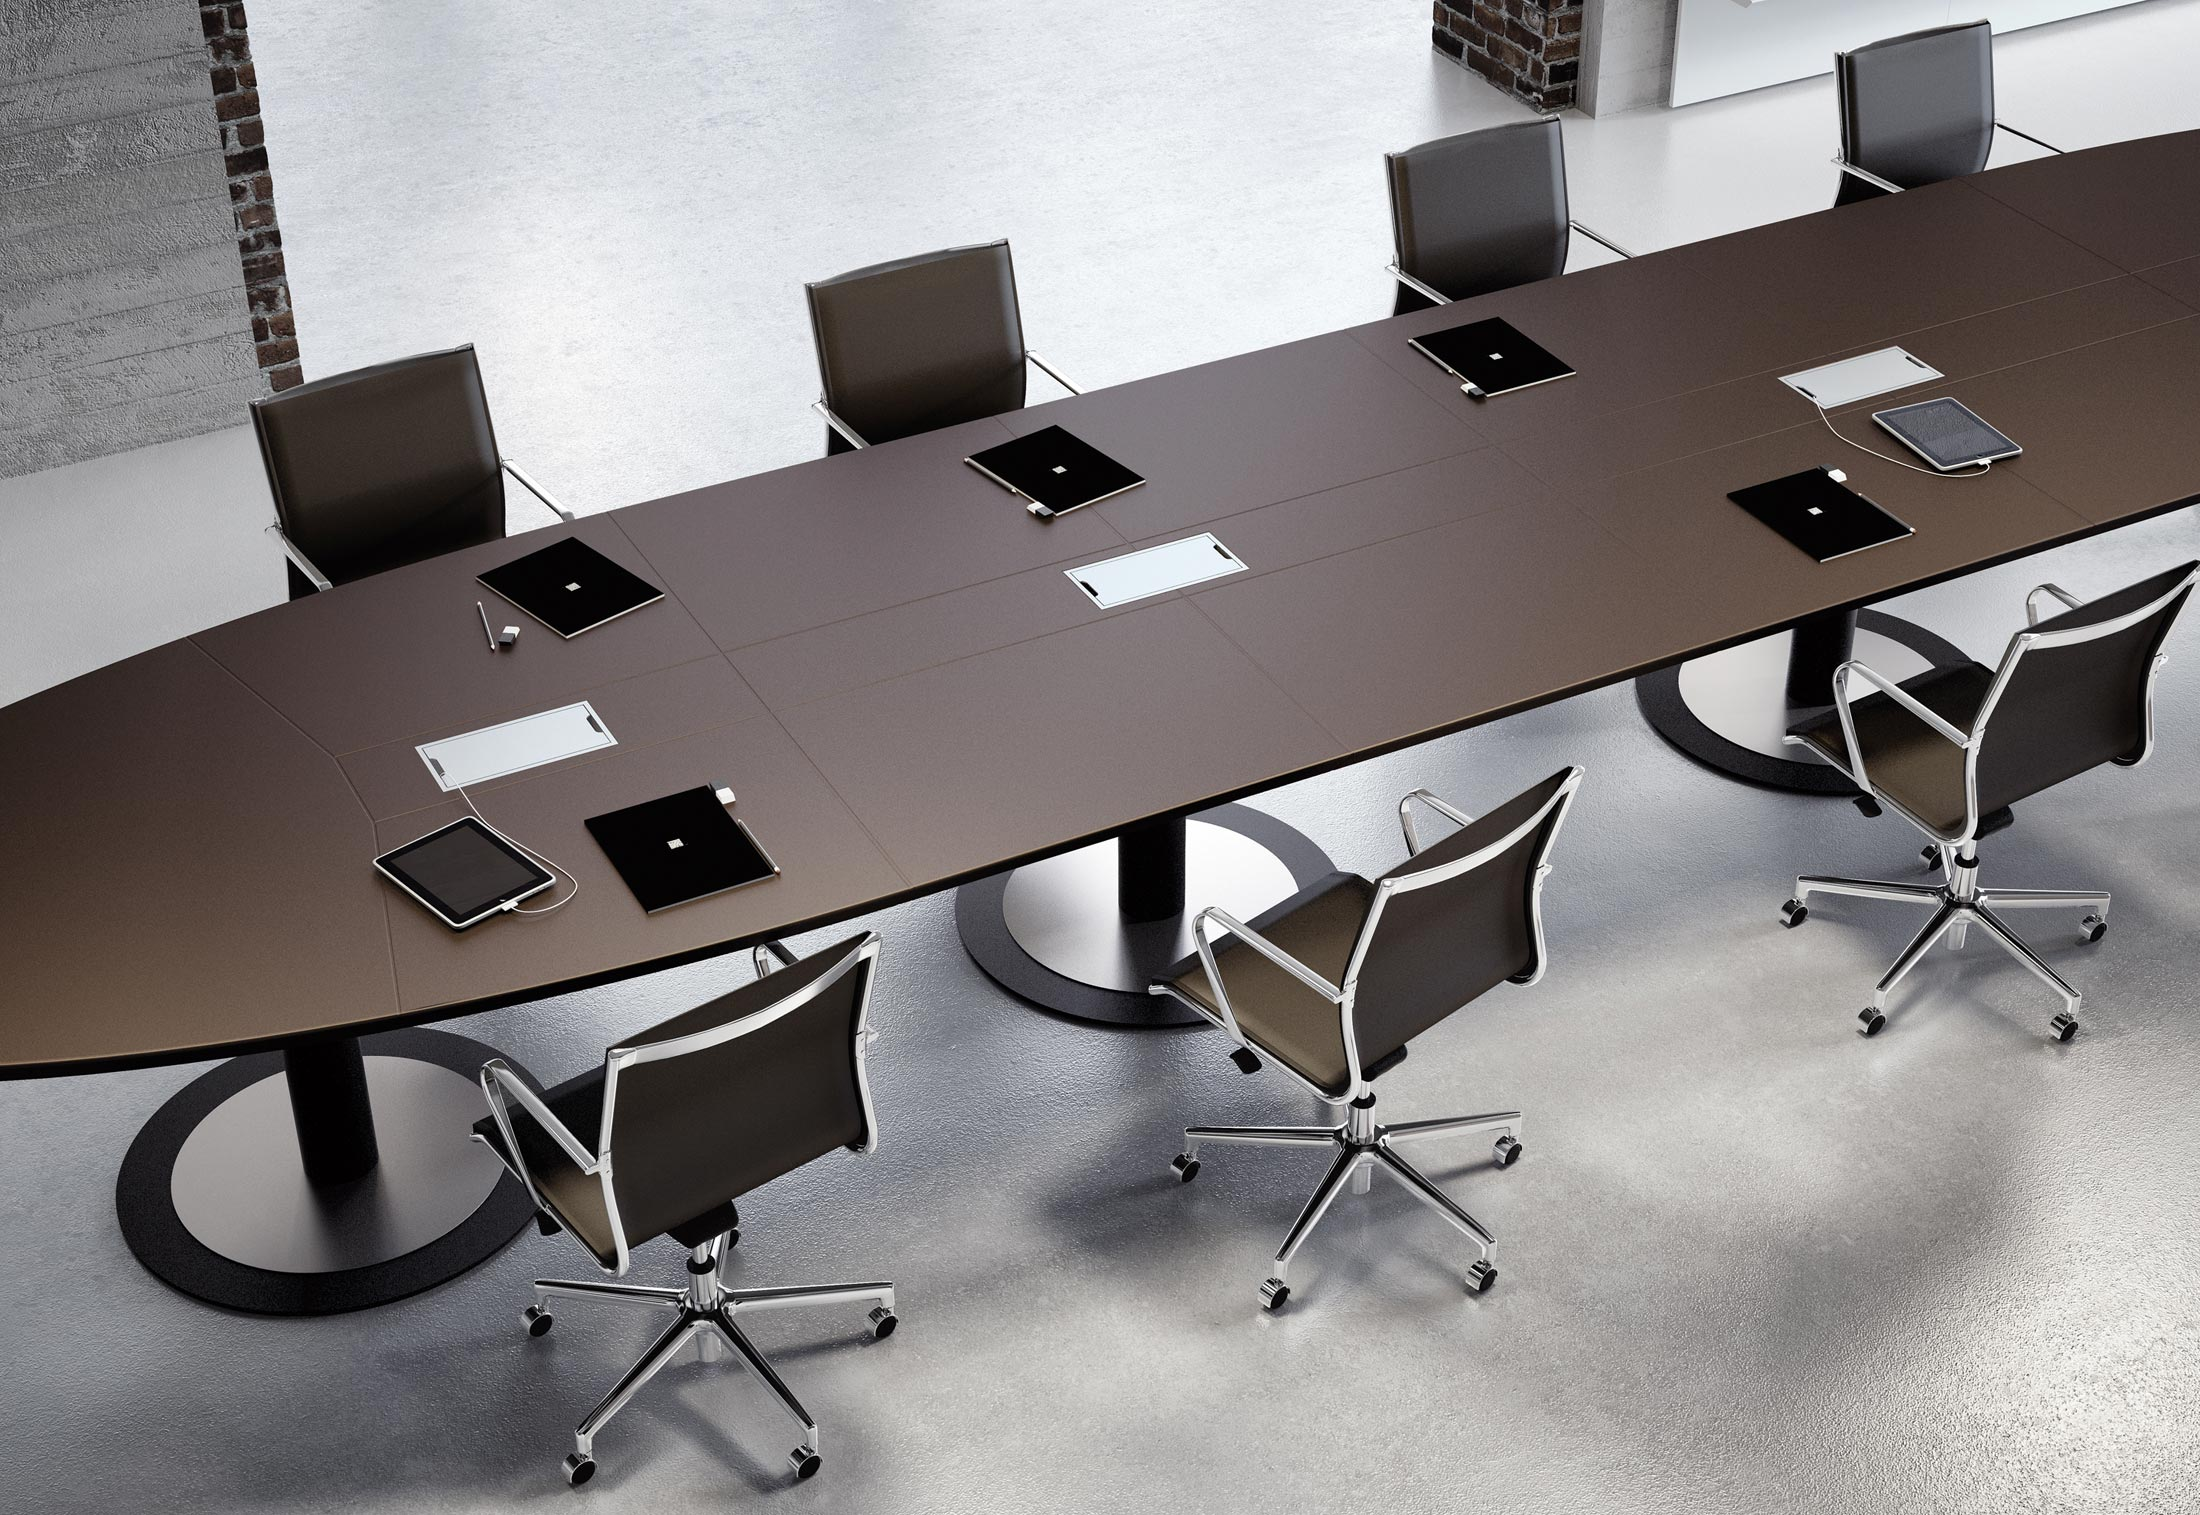 multipliceo modular conference table by fantoni stylepark rh stylepark com modular conference table bangalore modular conference table philippines